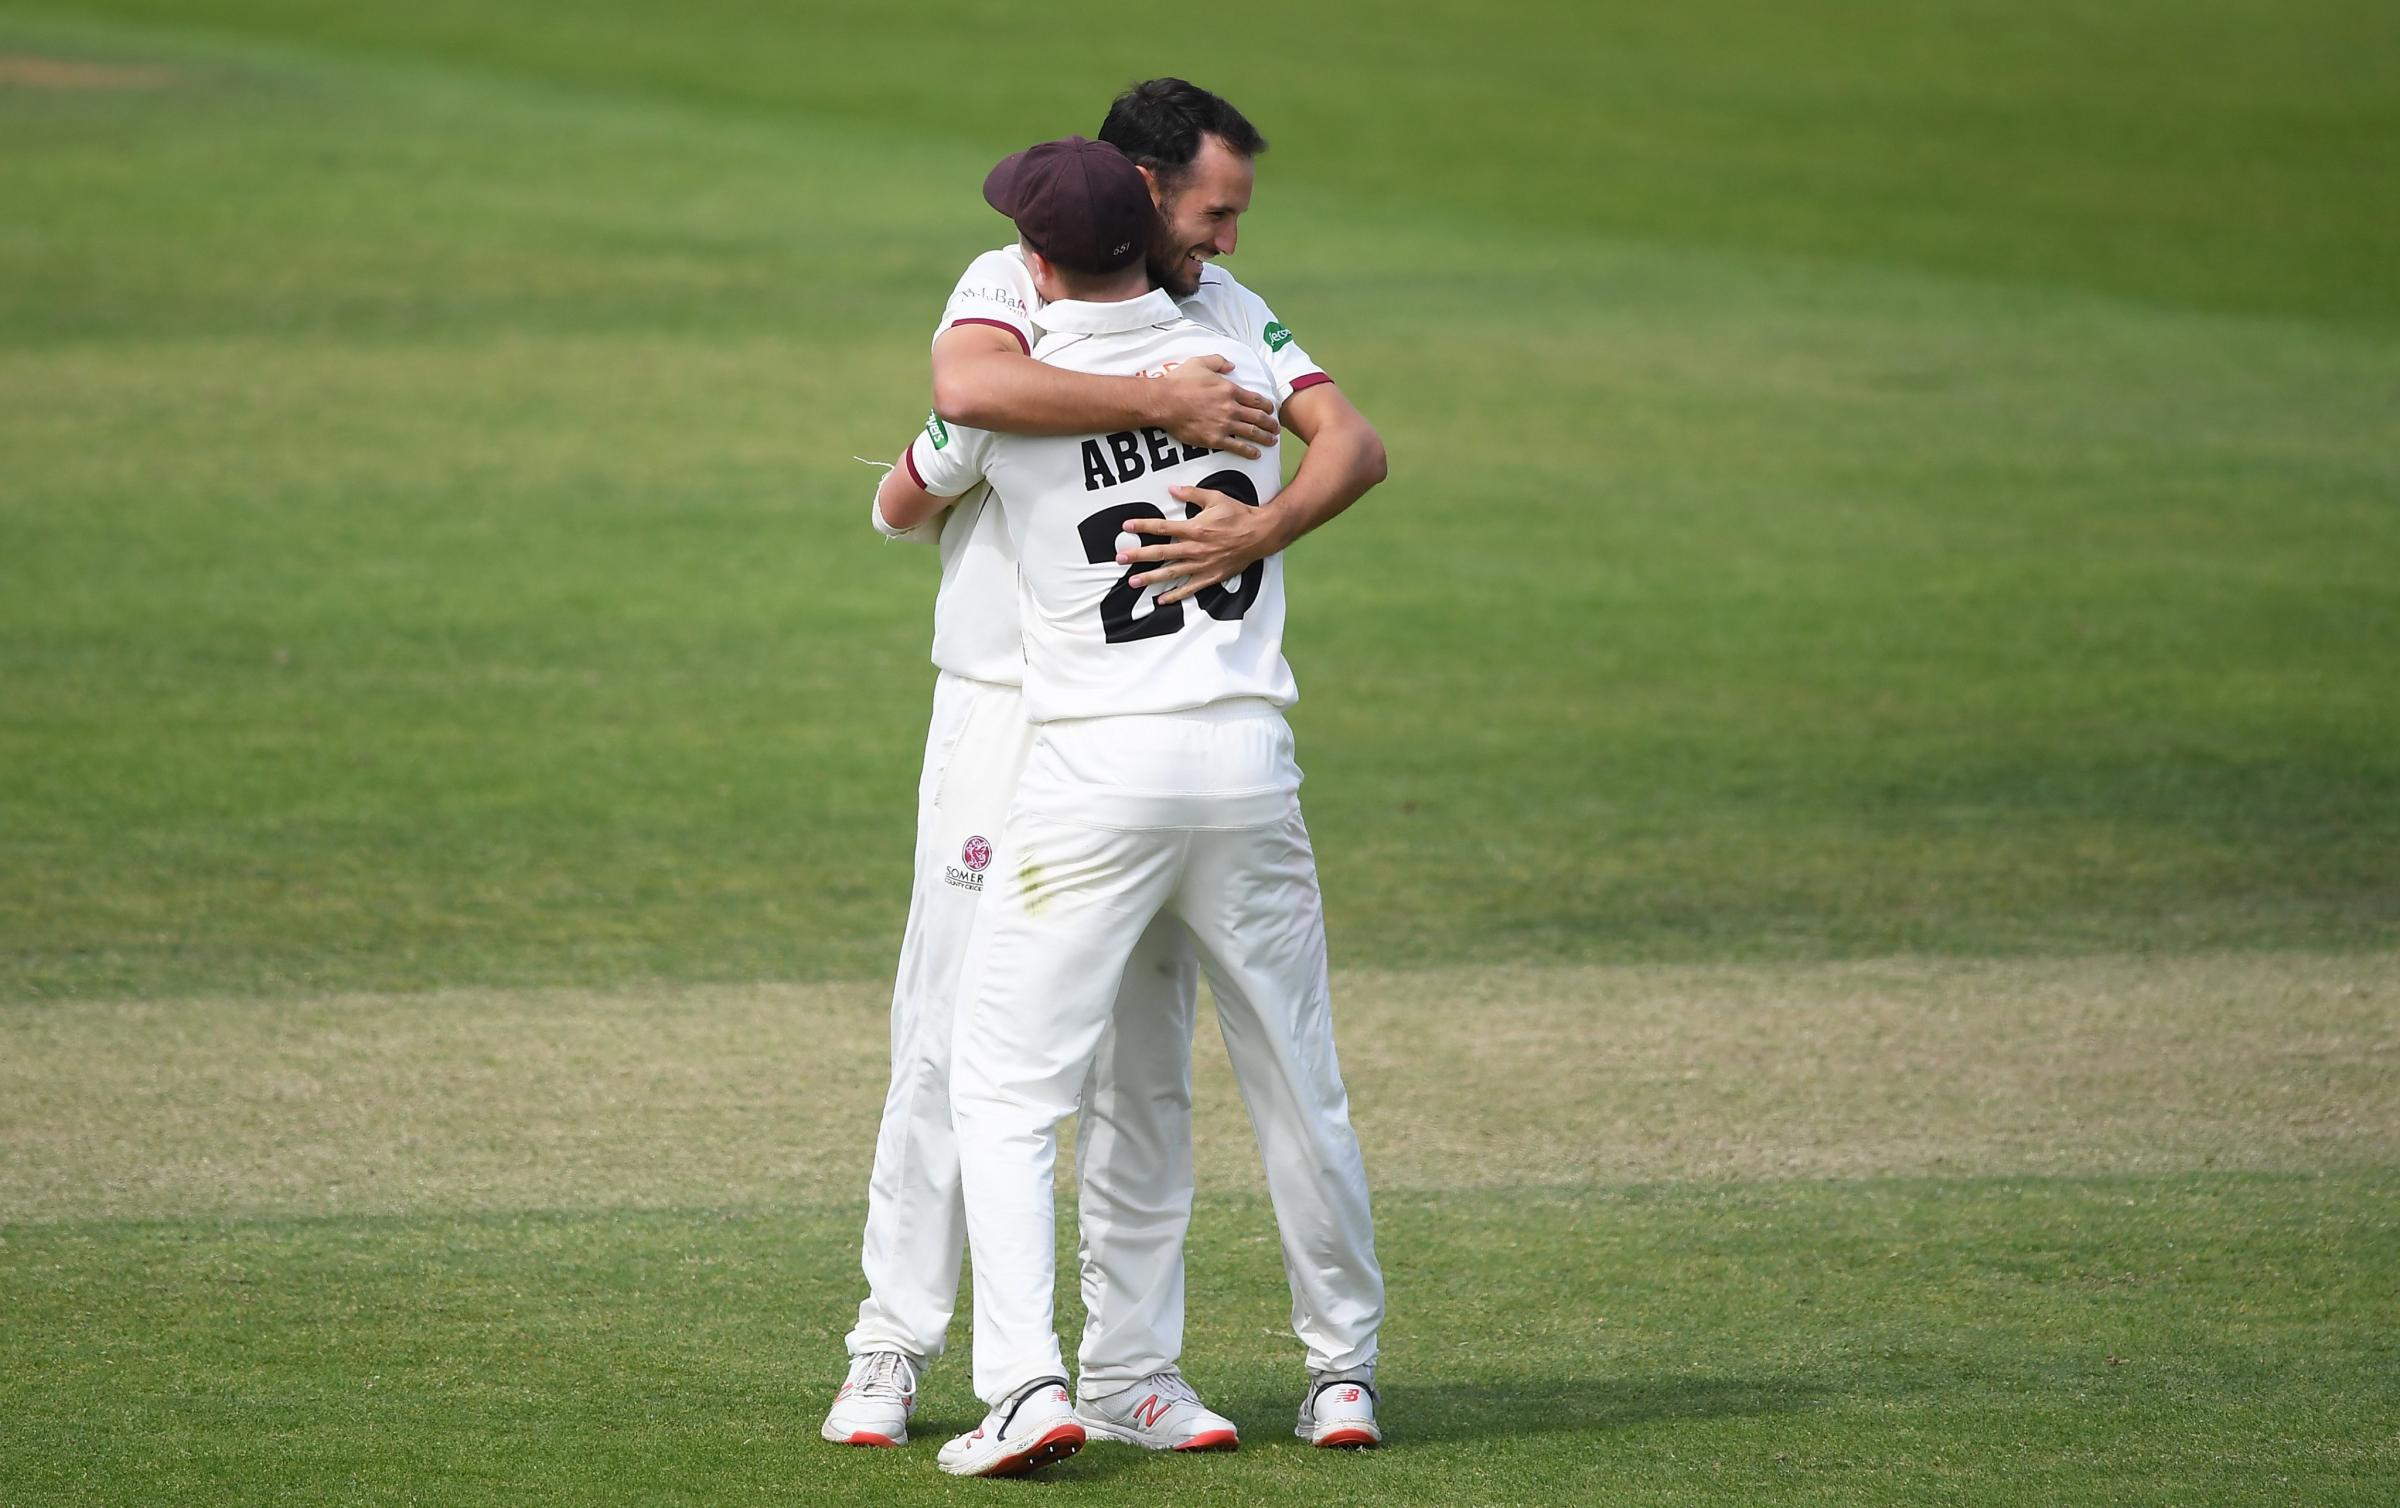 COUNTY CRICKET: Somerset finish off Warwickshire in Specsavers County Championship